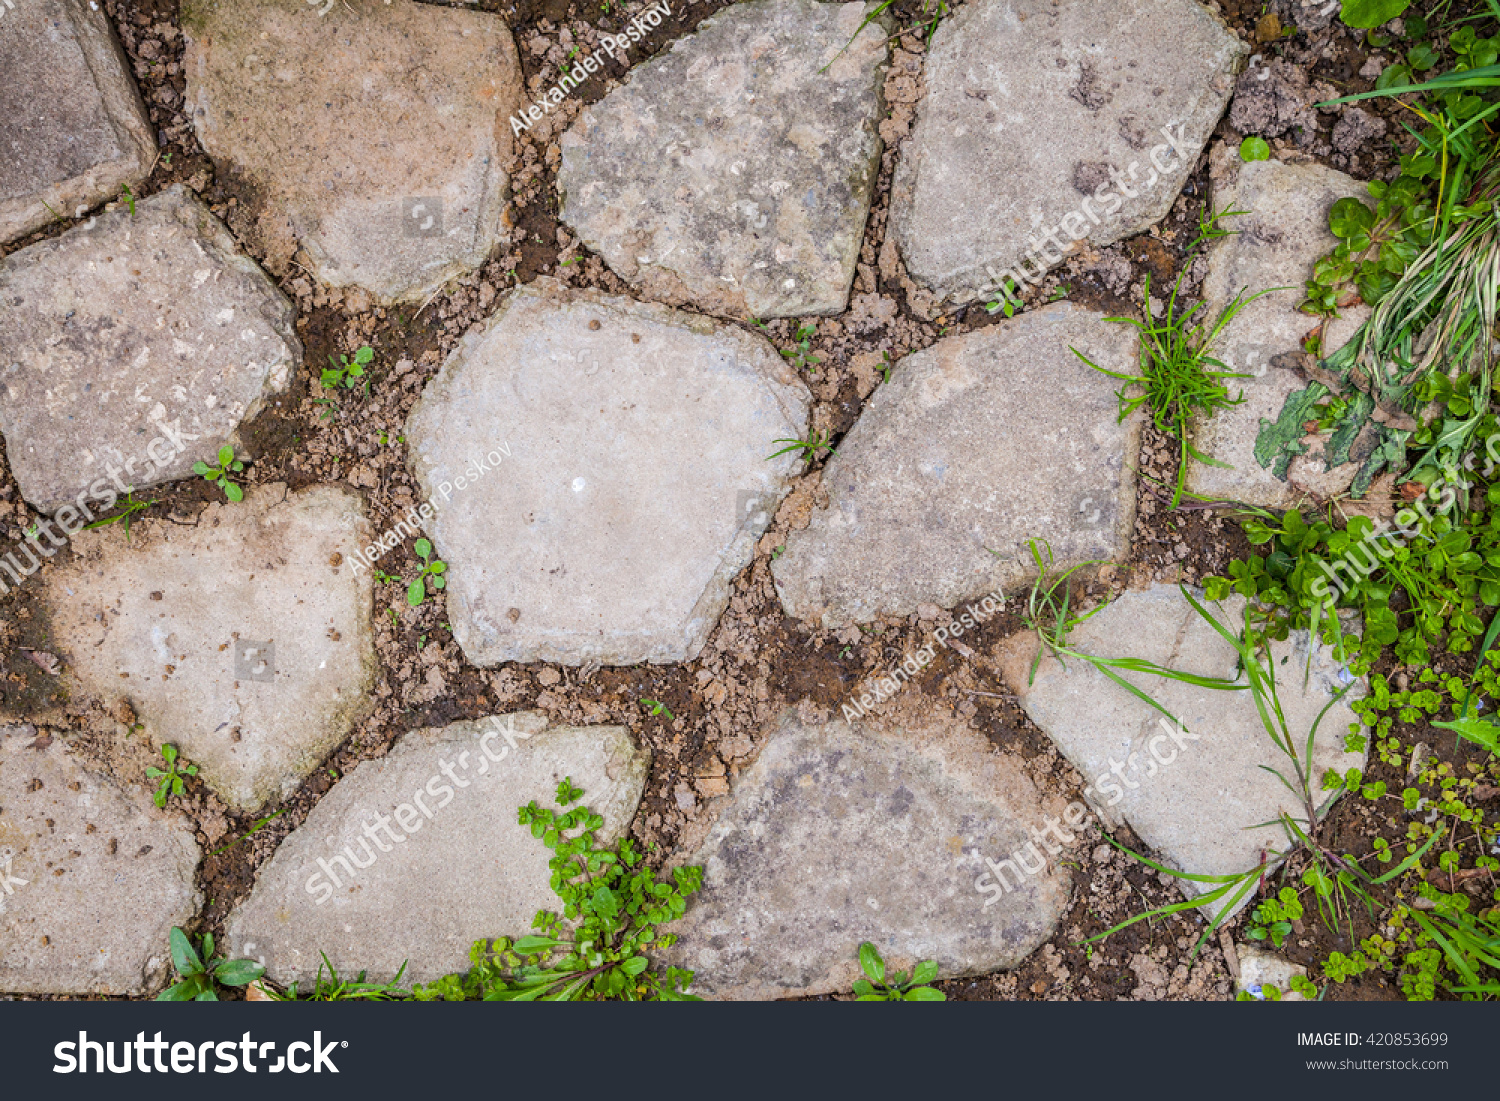 Stone Blocks For Decorative Garden Path With Grass And Ground. Brick  Concrete Tile For Tracks